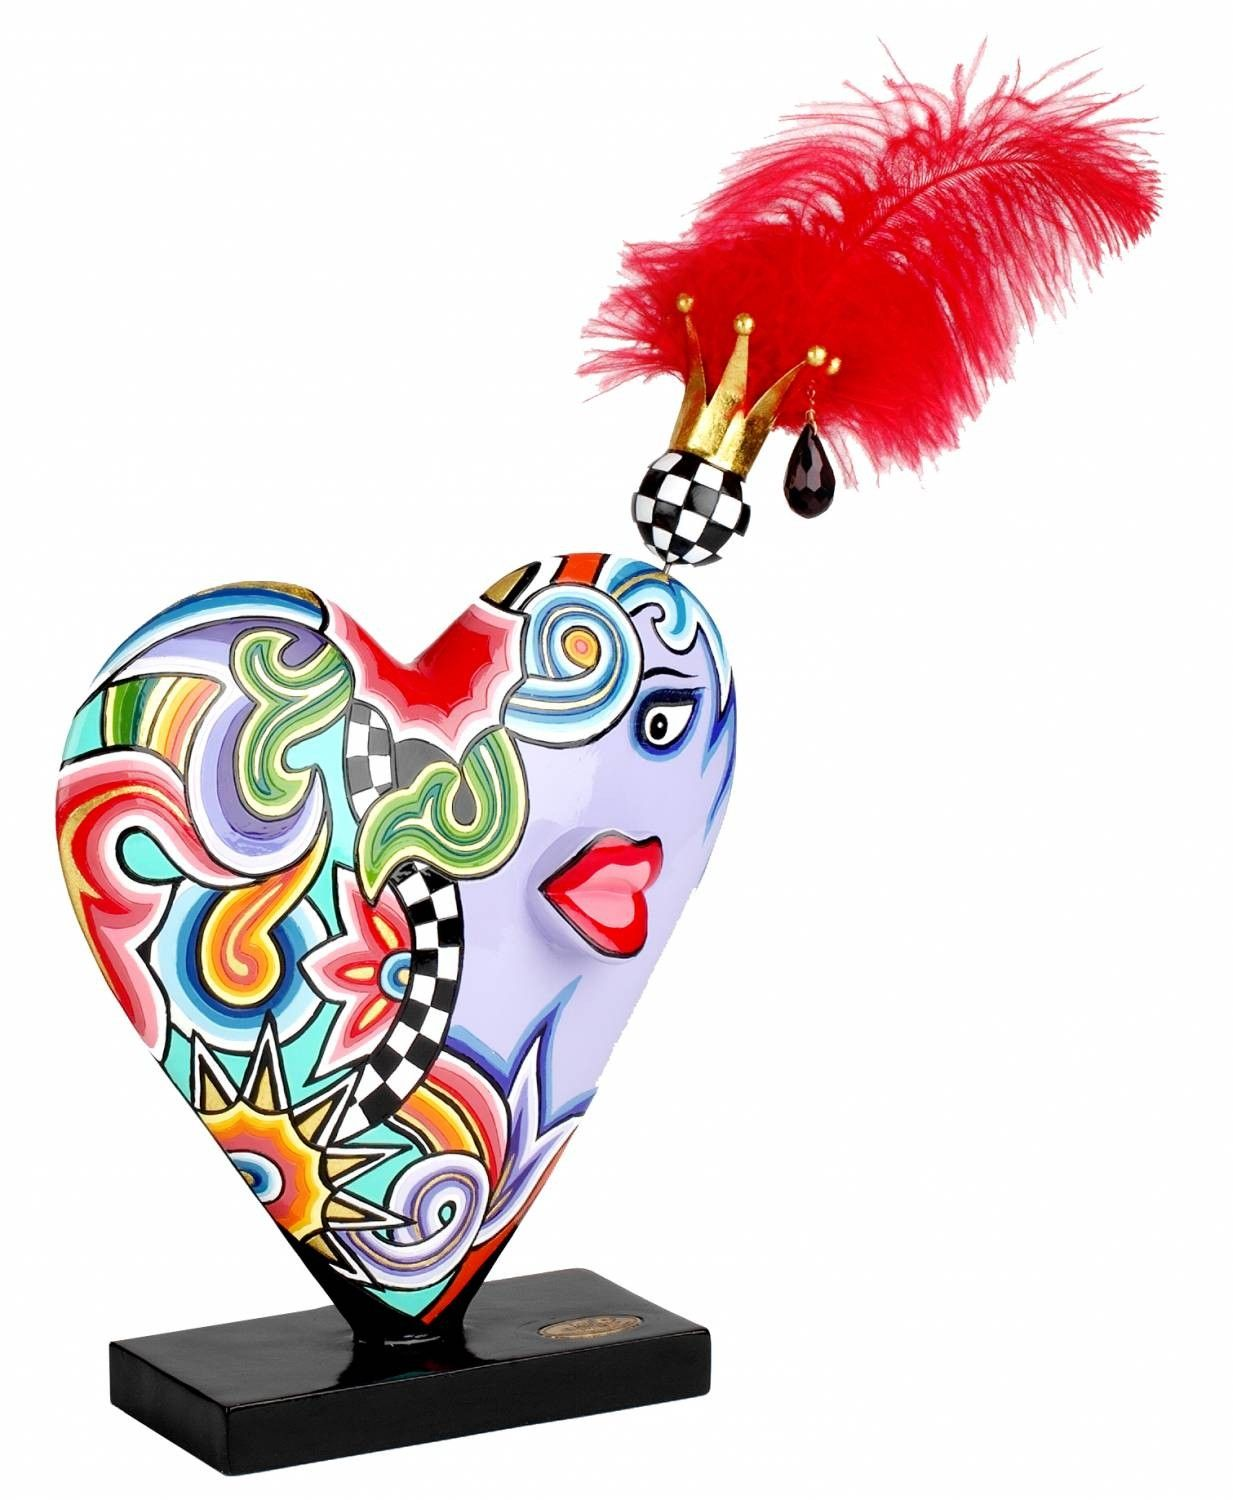 Toms Drag HEART Figure with Feathers XL | Animales